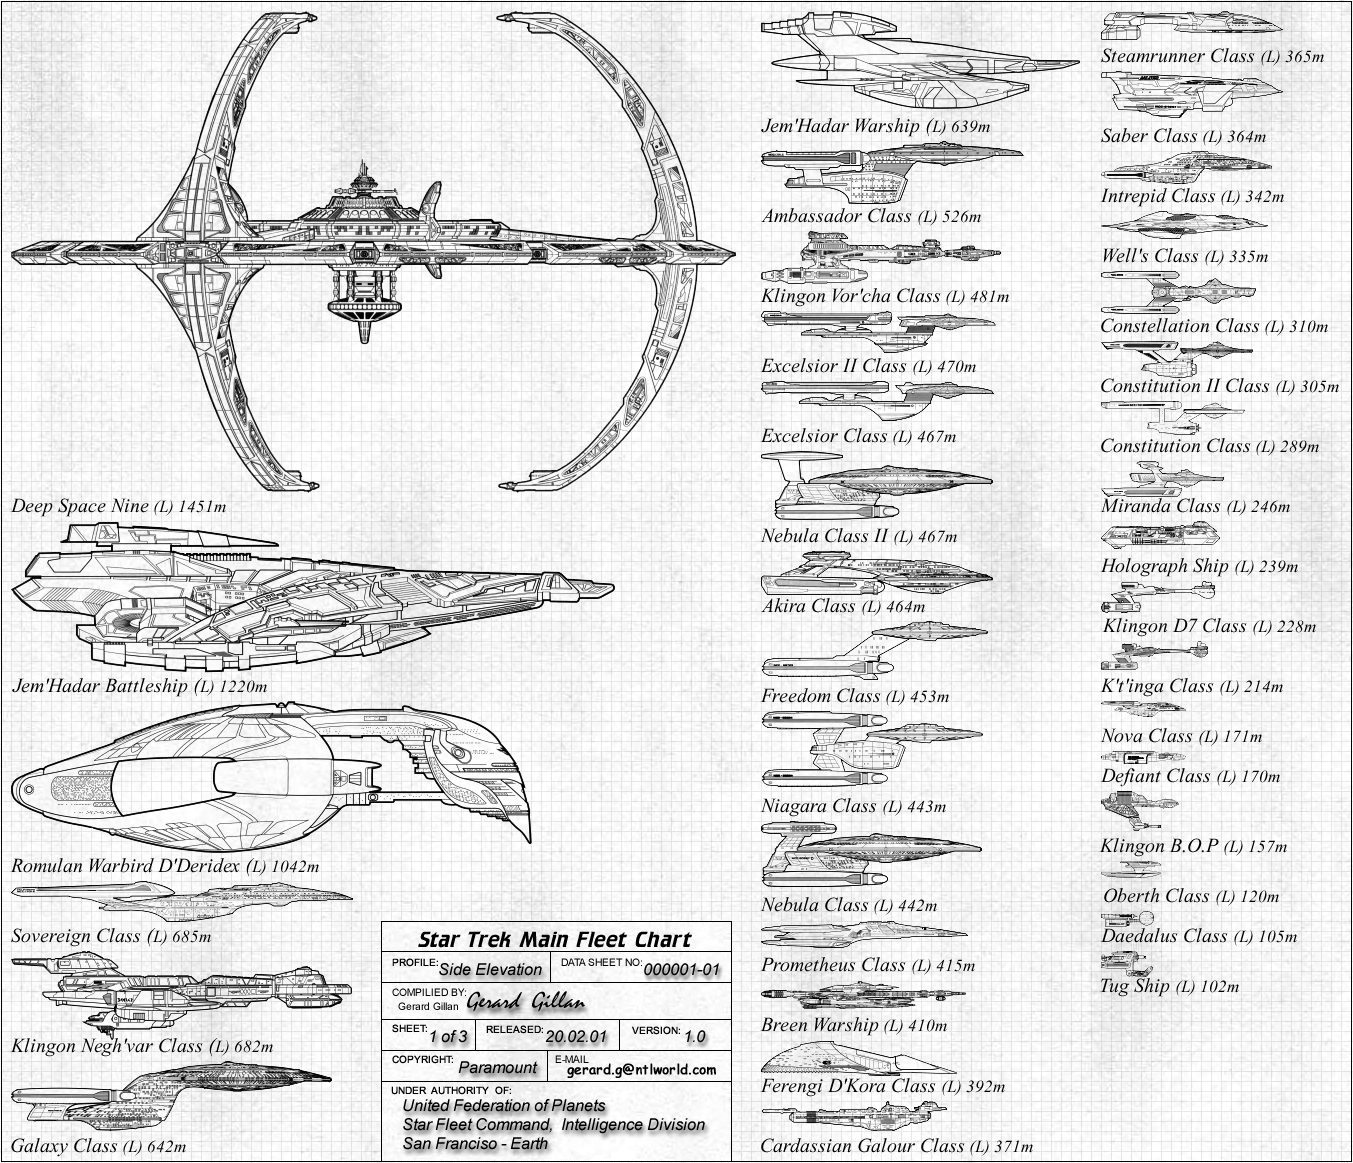 starship schematic with Thumbnails on The Surely Schematic 162077477 together with Lhc Motor De Dobrabeta Version besides Starbase375 01 moreover Tesla Model S Engine Schematics likewise Star Wars Blueprint.